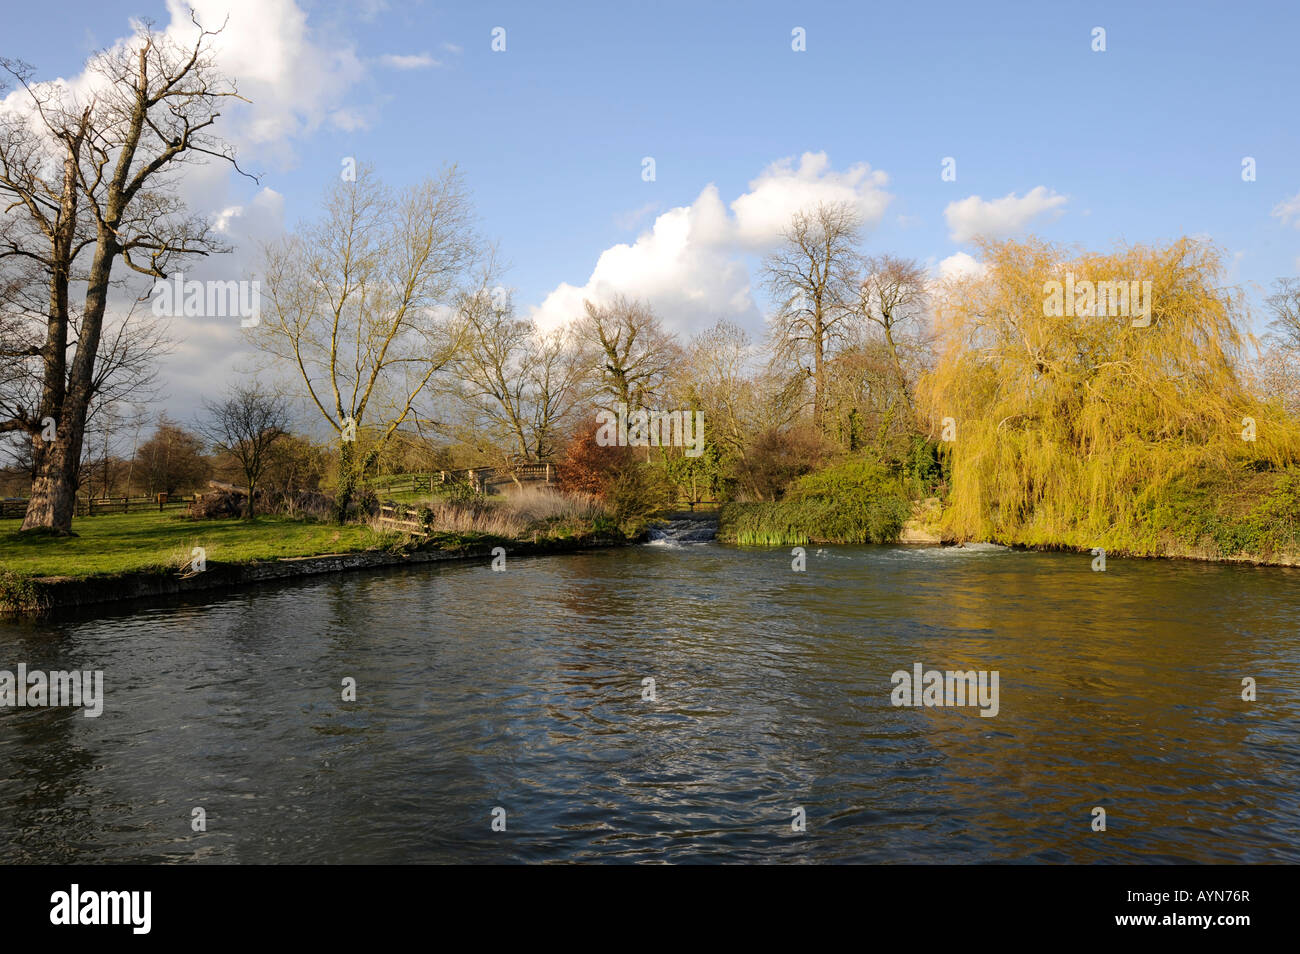 River Coln Mill Pond at Fairford - Stock Image